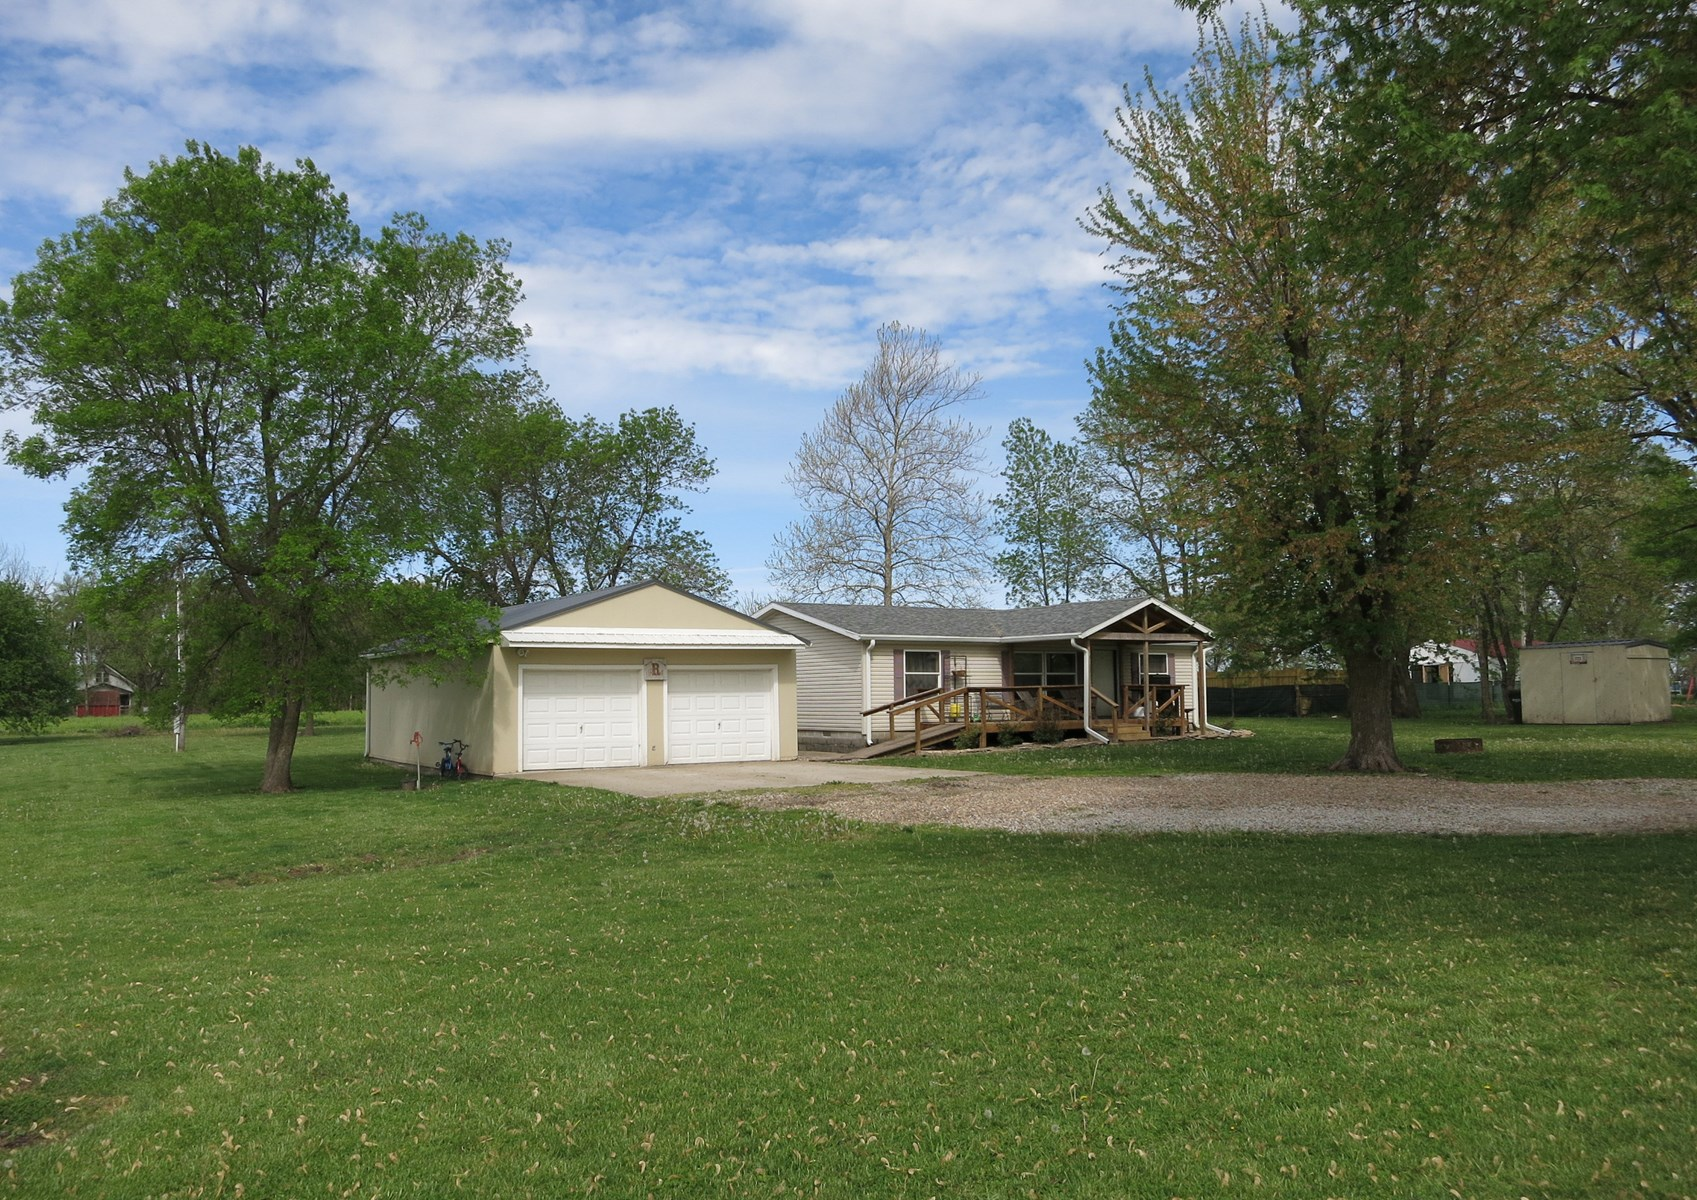 Home for Sale in Rural NW MO Town